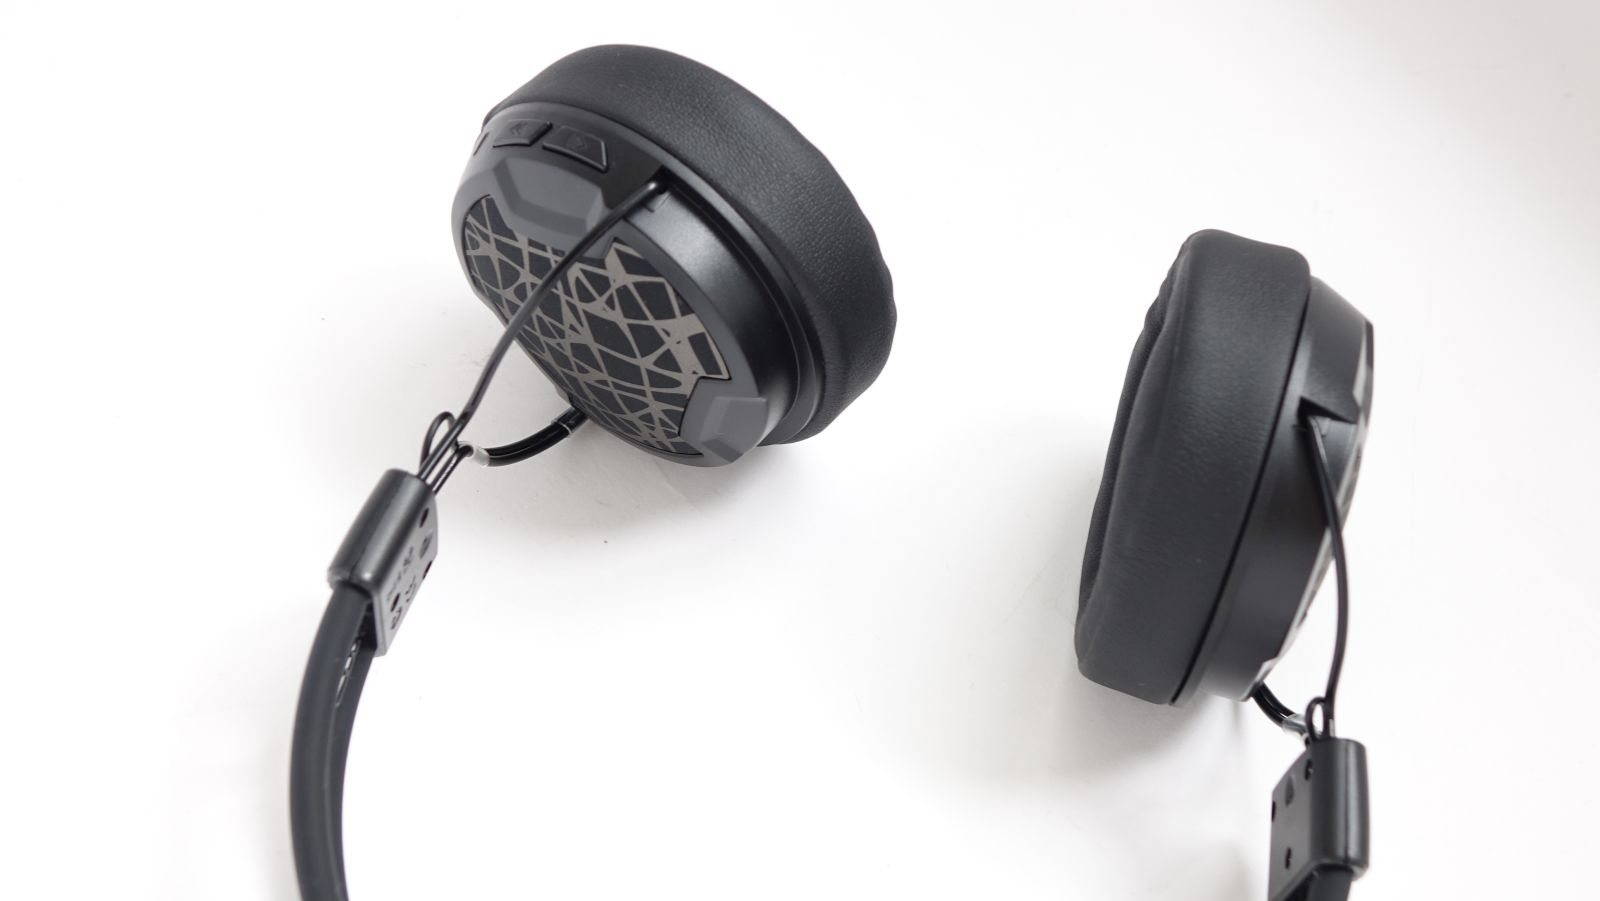 Arctic P604 Wireless ear